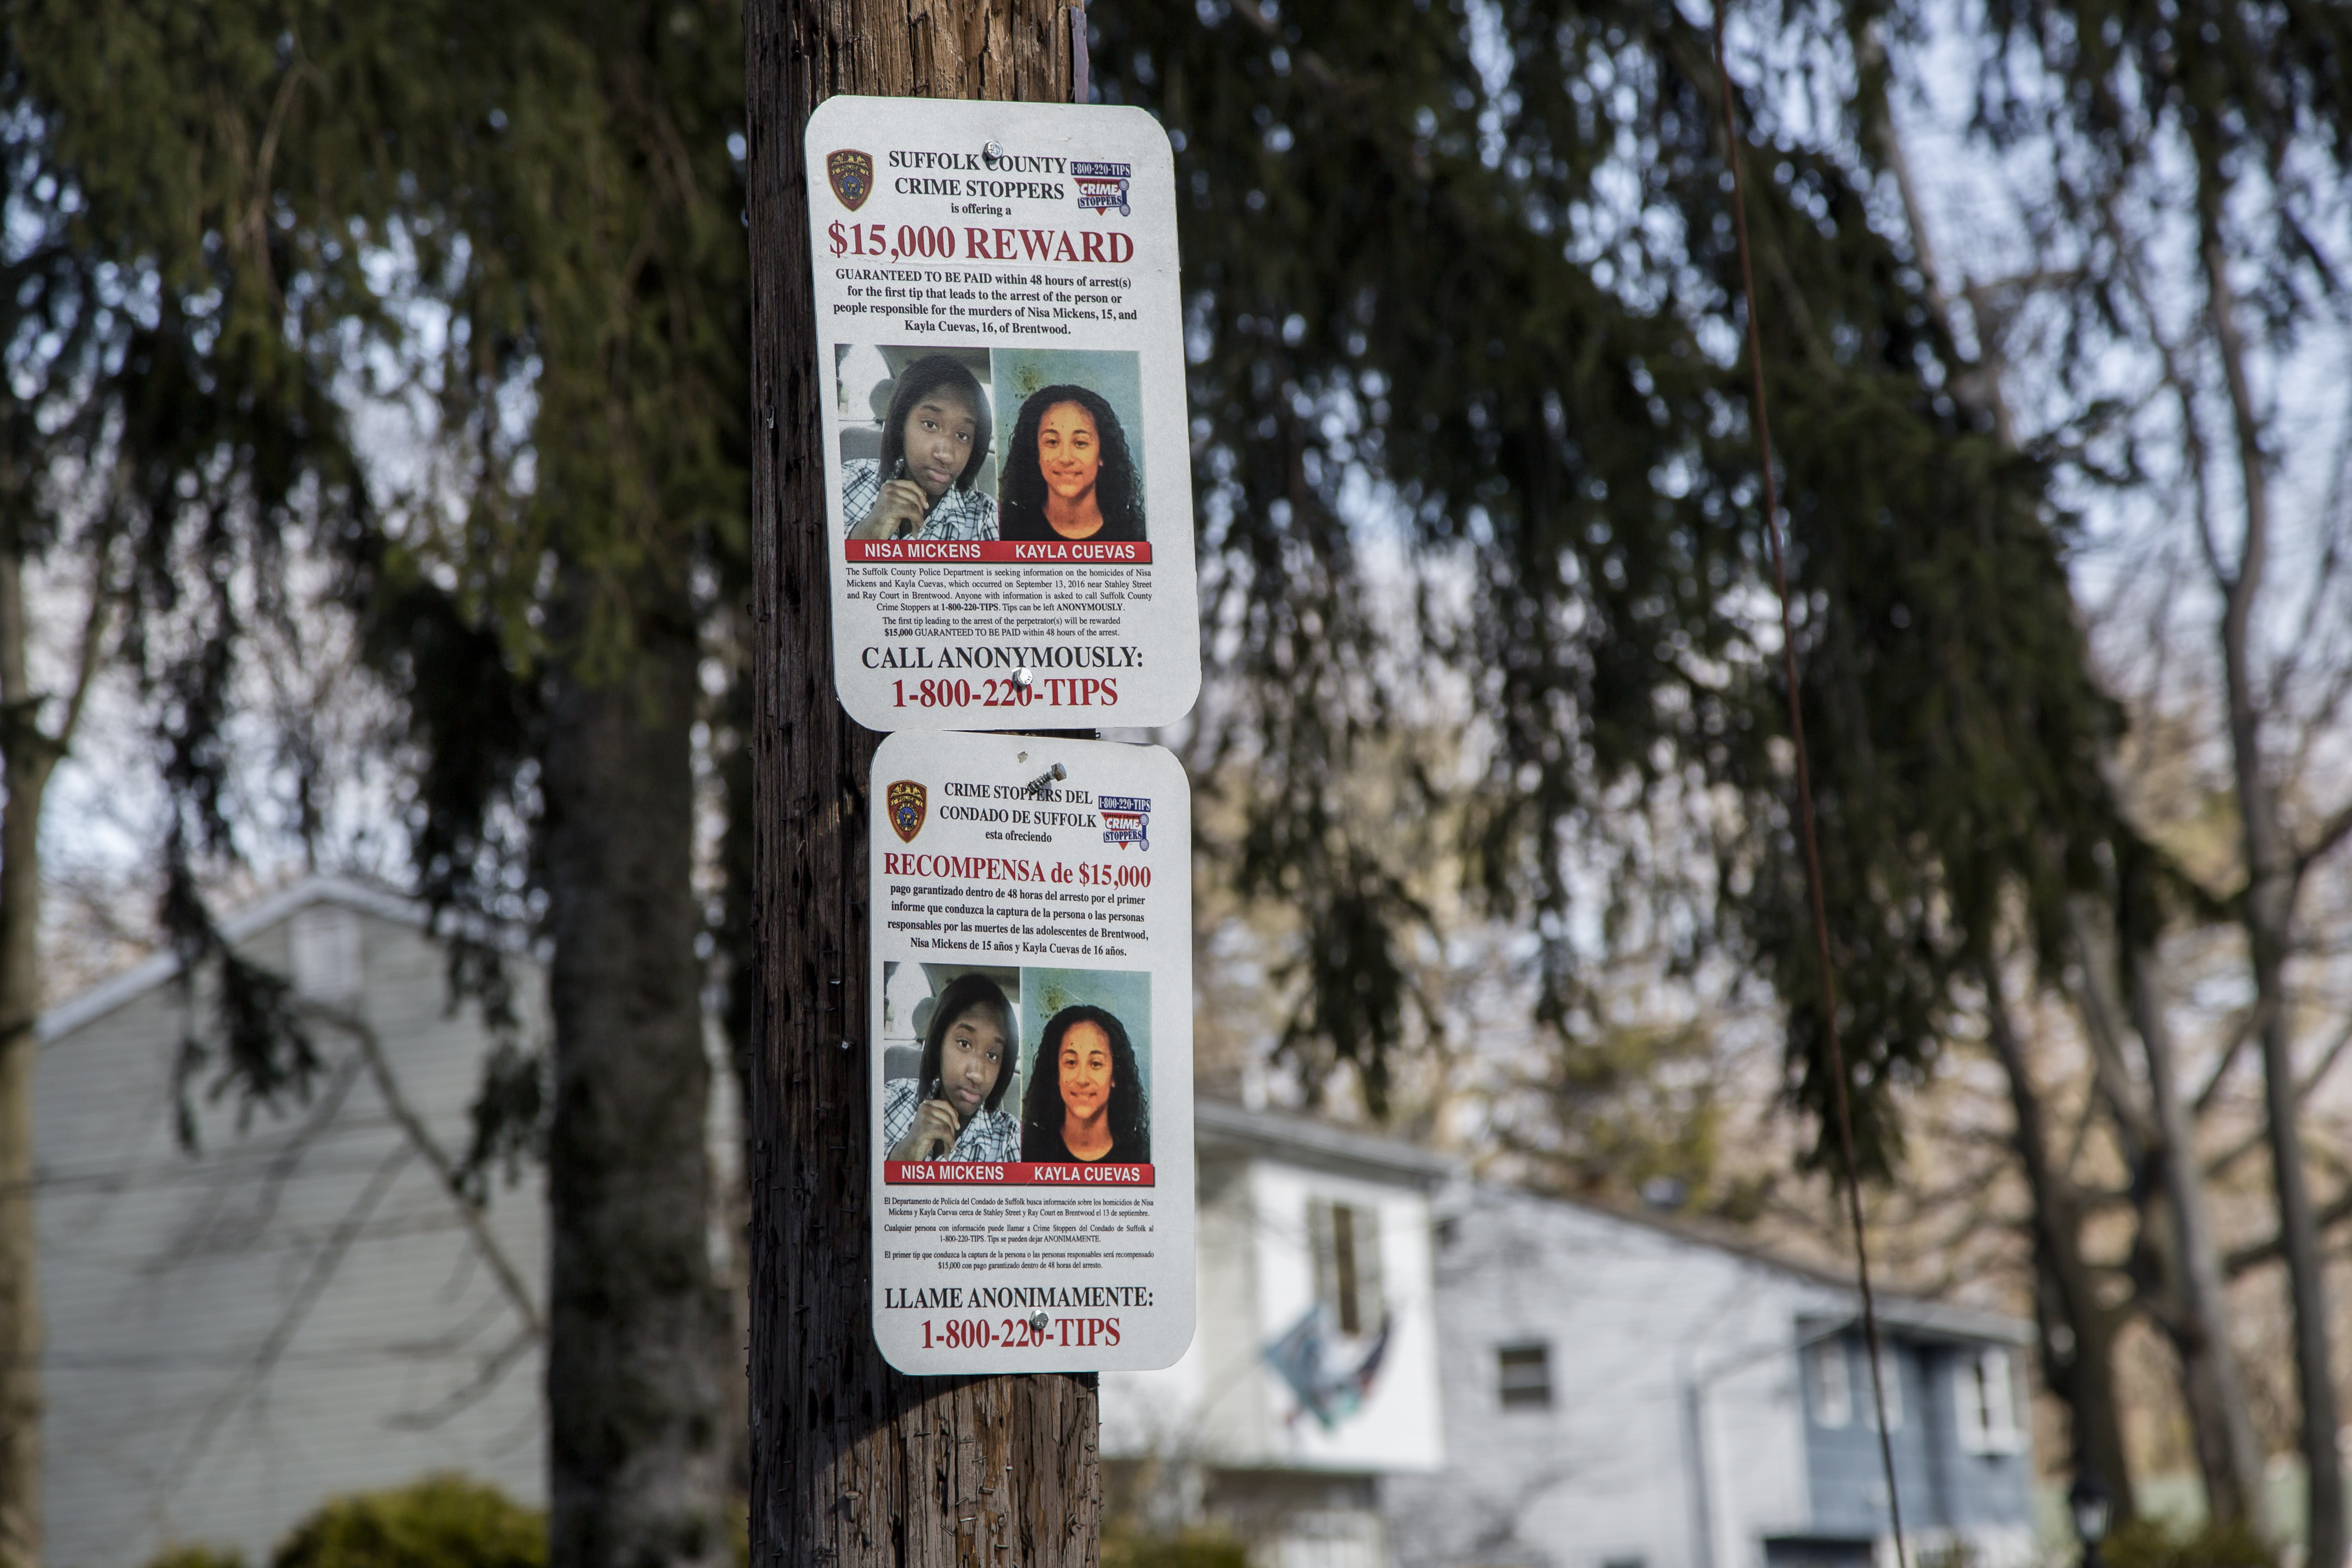 A sign offering a reward for information regarding the murders of Nisa Mickens and Kayla Cuevas, near Brentwood High School where they attended, in Suffolk County, Long Island, N.Y., on March 29. (Samira Bouaou/The Epoch Times)